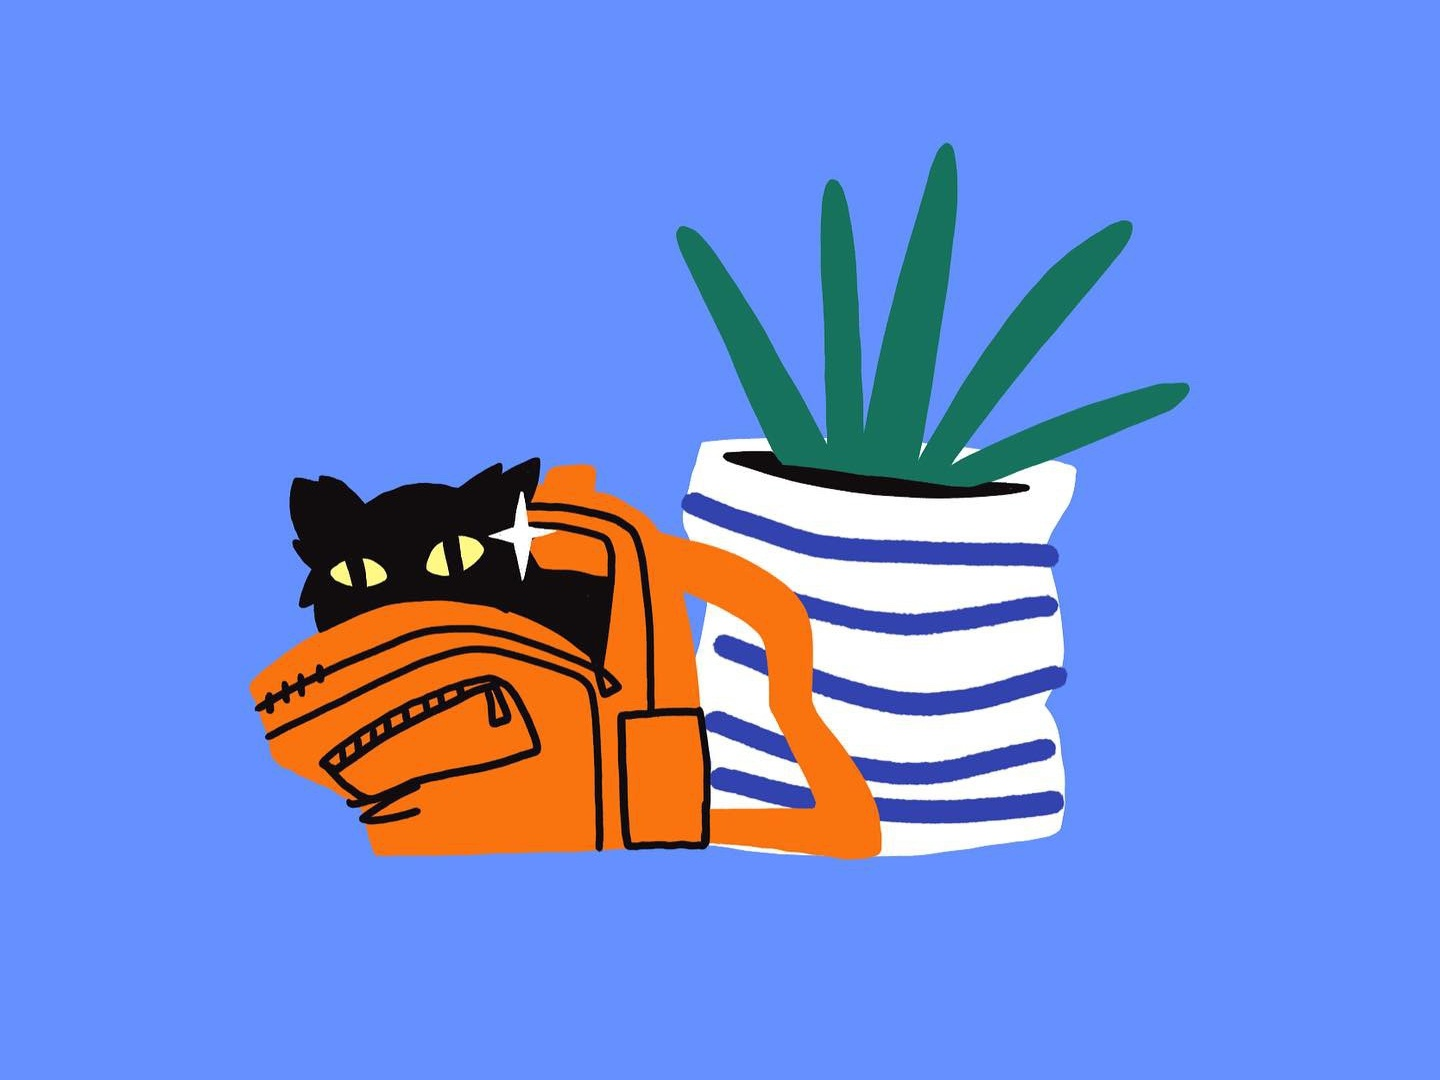 Moving cat character roomies design procreate illustration